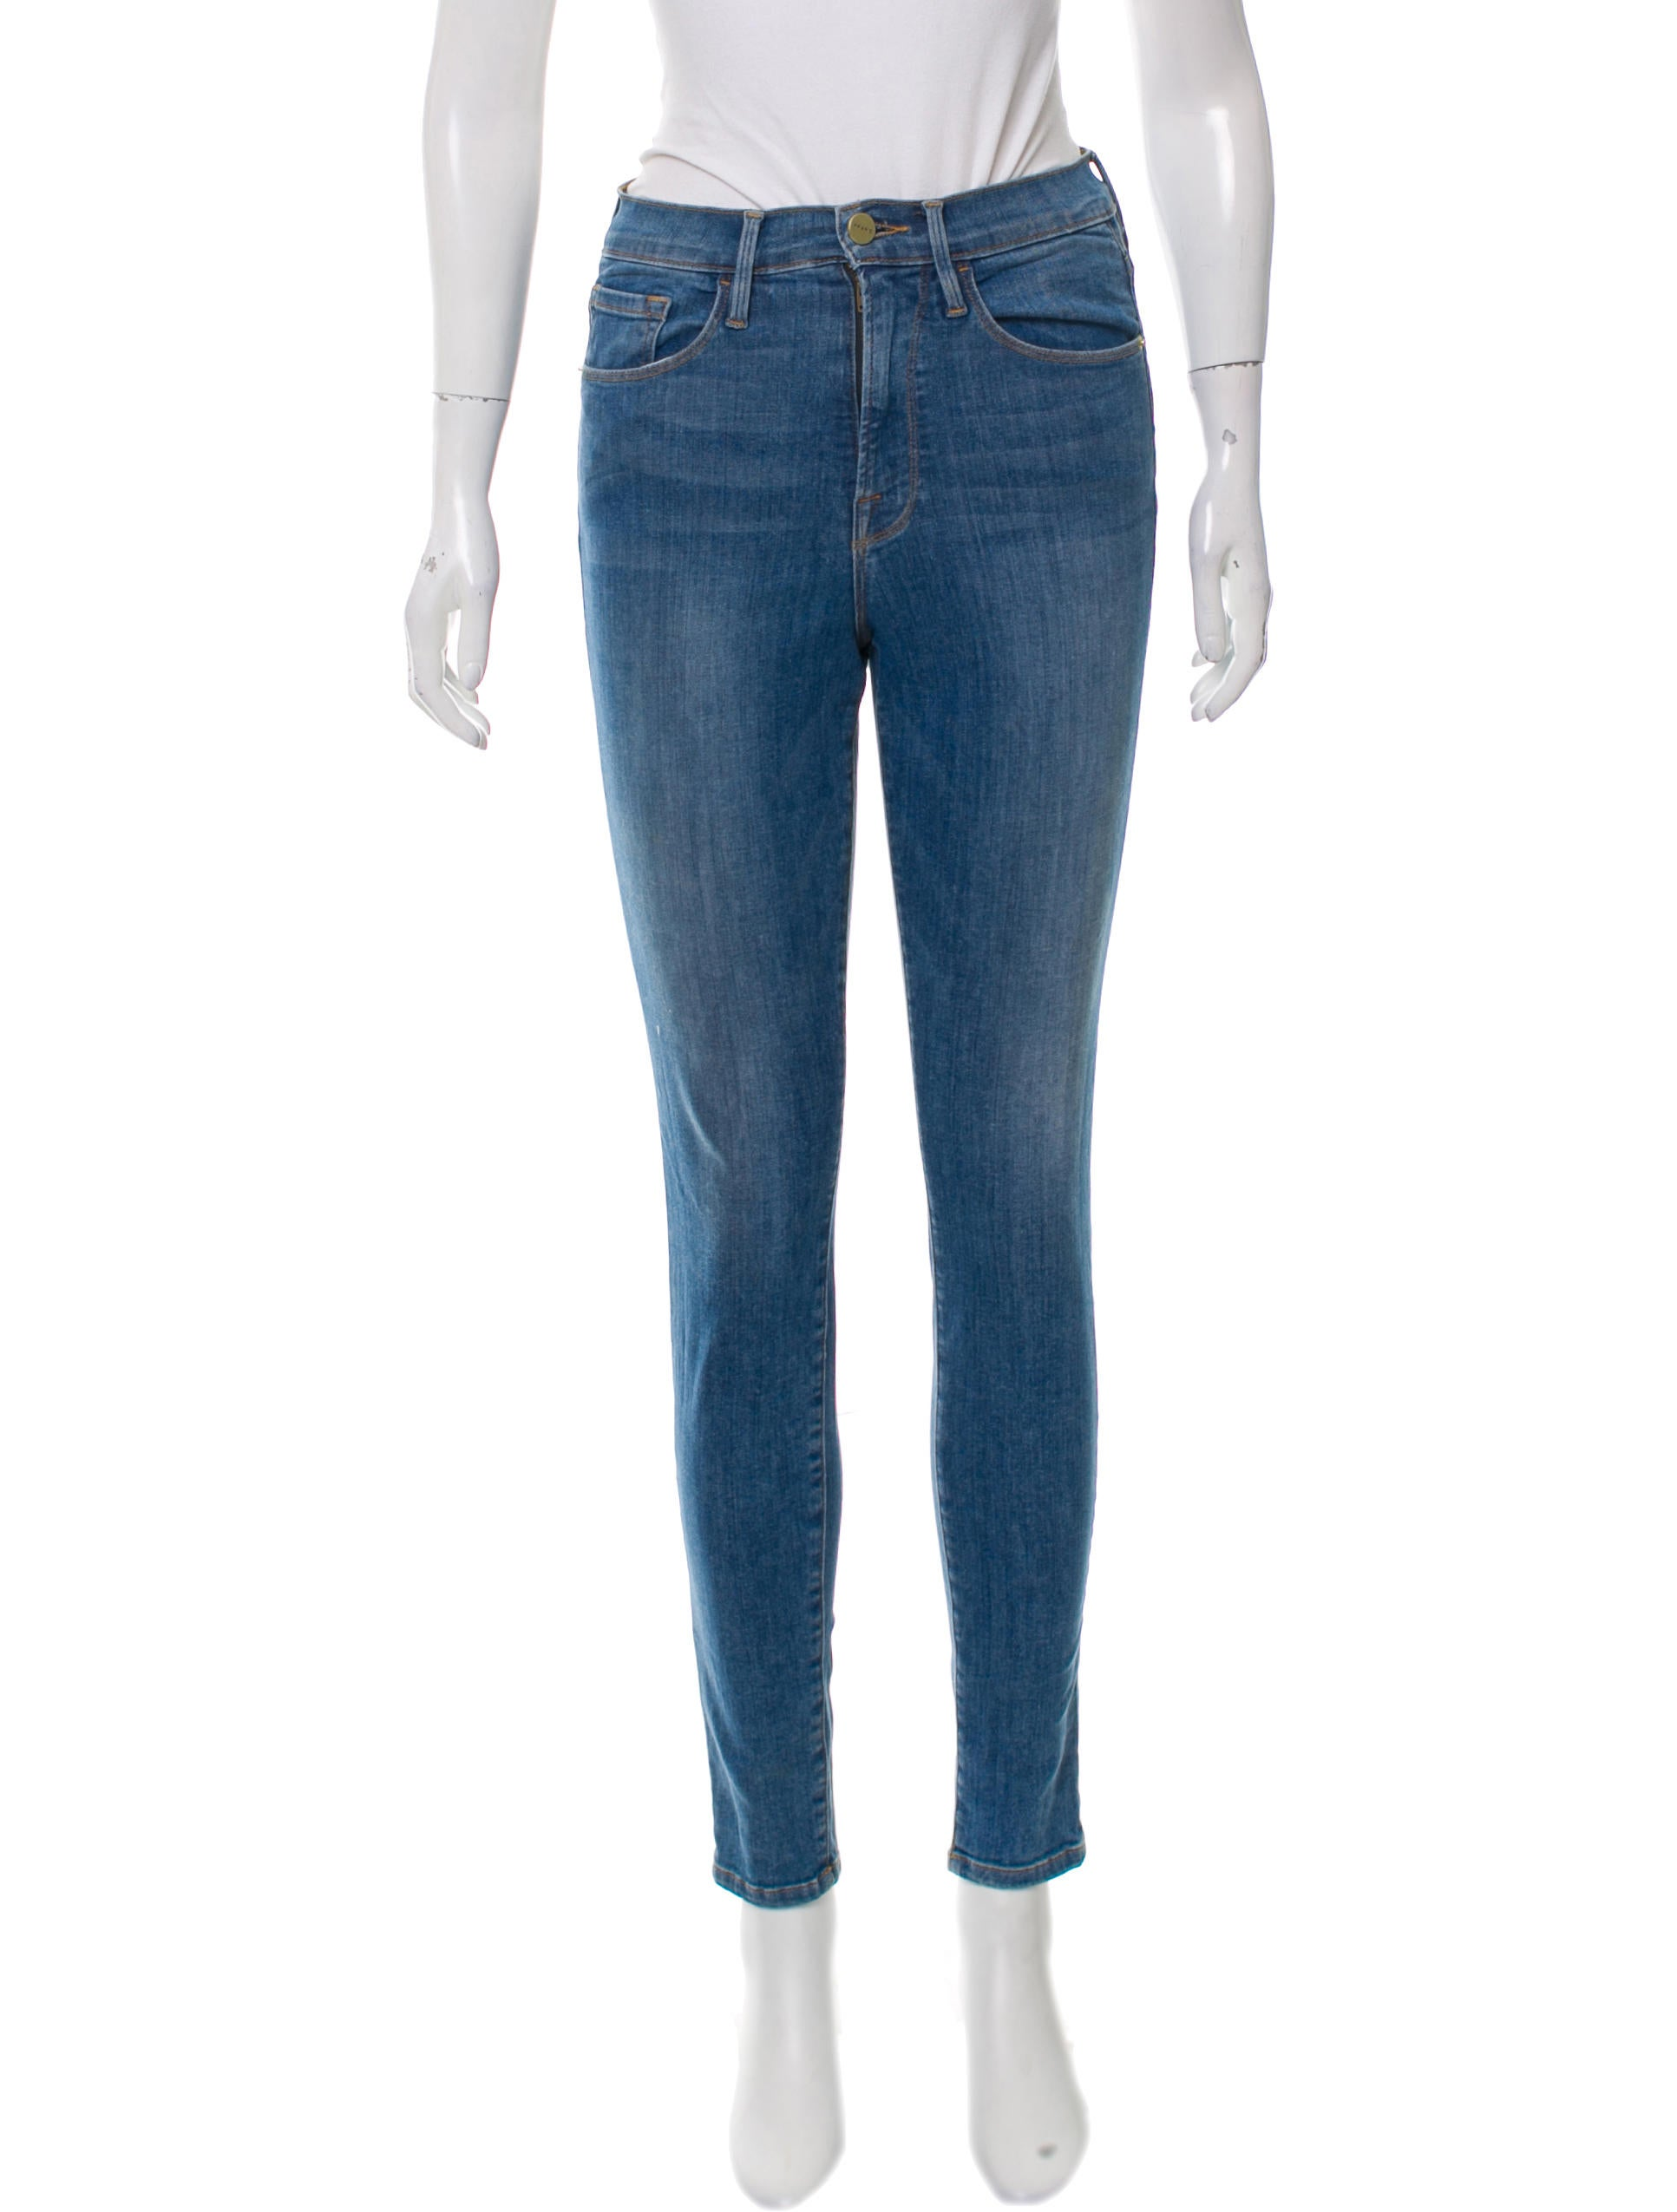 Ali High-rise Skinny Jeans - Mid denim Frame Denim Clearance Huge Surprise Free Shipping Clearance Shopping Online Clearance Cheap Sale Fashion Style How Much Cheap Price apu1H